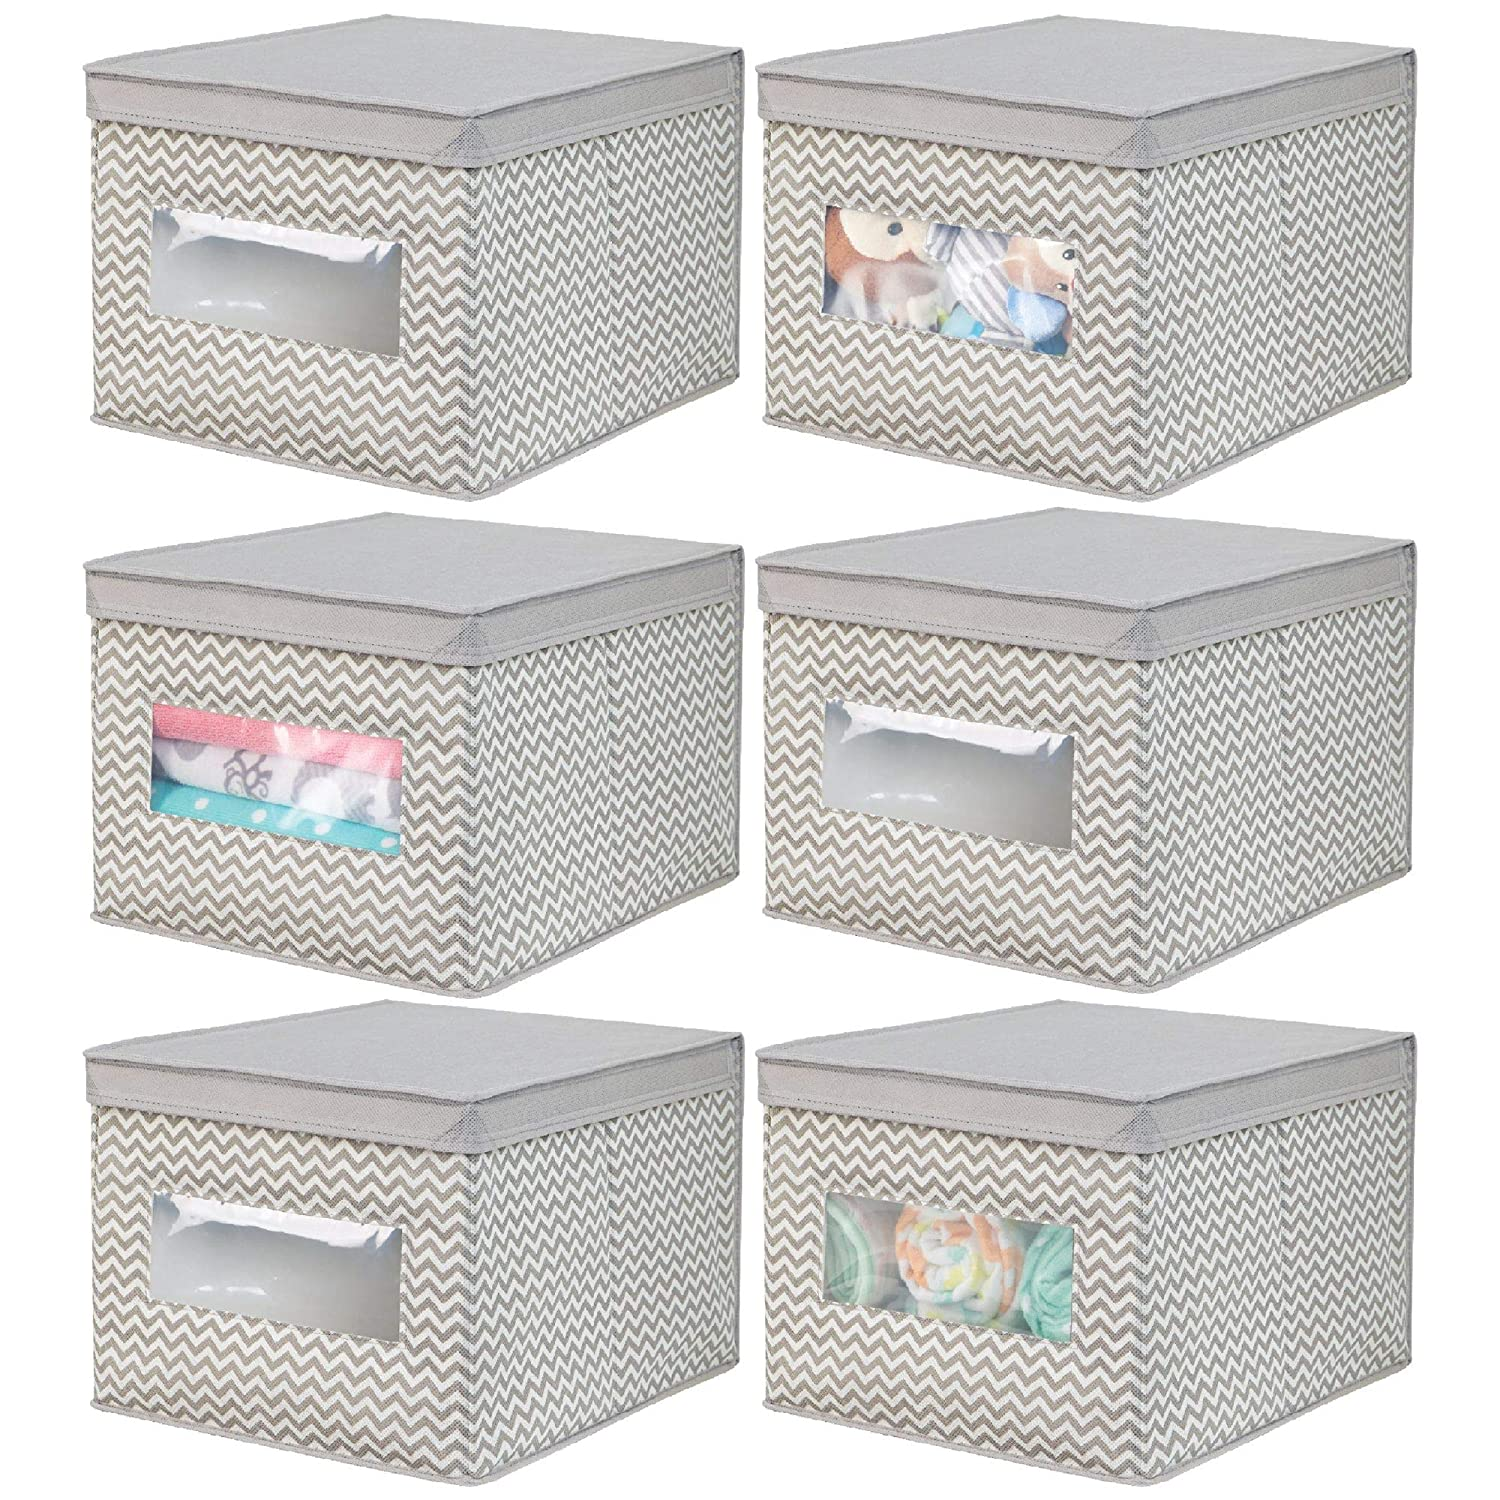 mDesign Decorative Soft Stackable Fabric Closet Storage Organizer Holder Box - Clear Window, Lid, for Child/Kids Room, Nursery - Large, Collapsible Foldable - Textured Print, 6 Pack - Gray MetroDecor 01858MDB